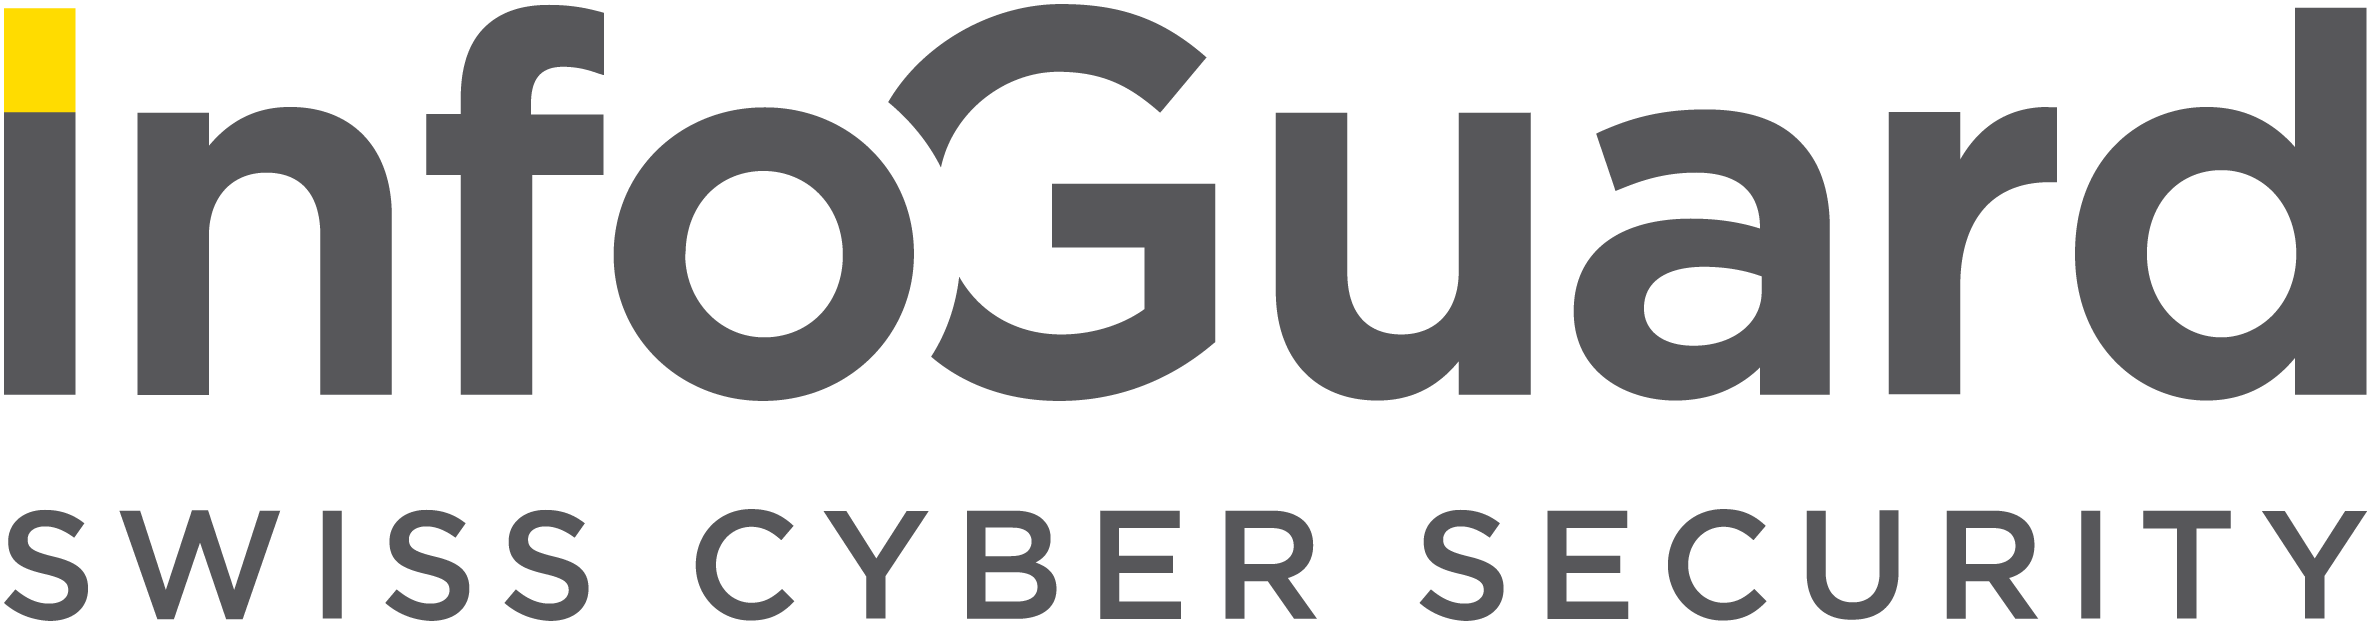 InfoGuard Swiss Cyber Security Logo